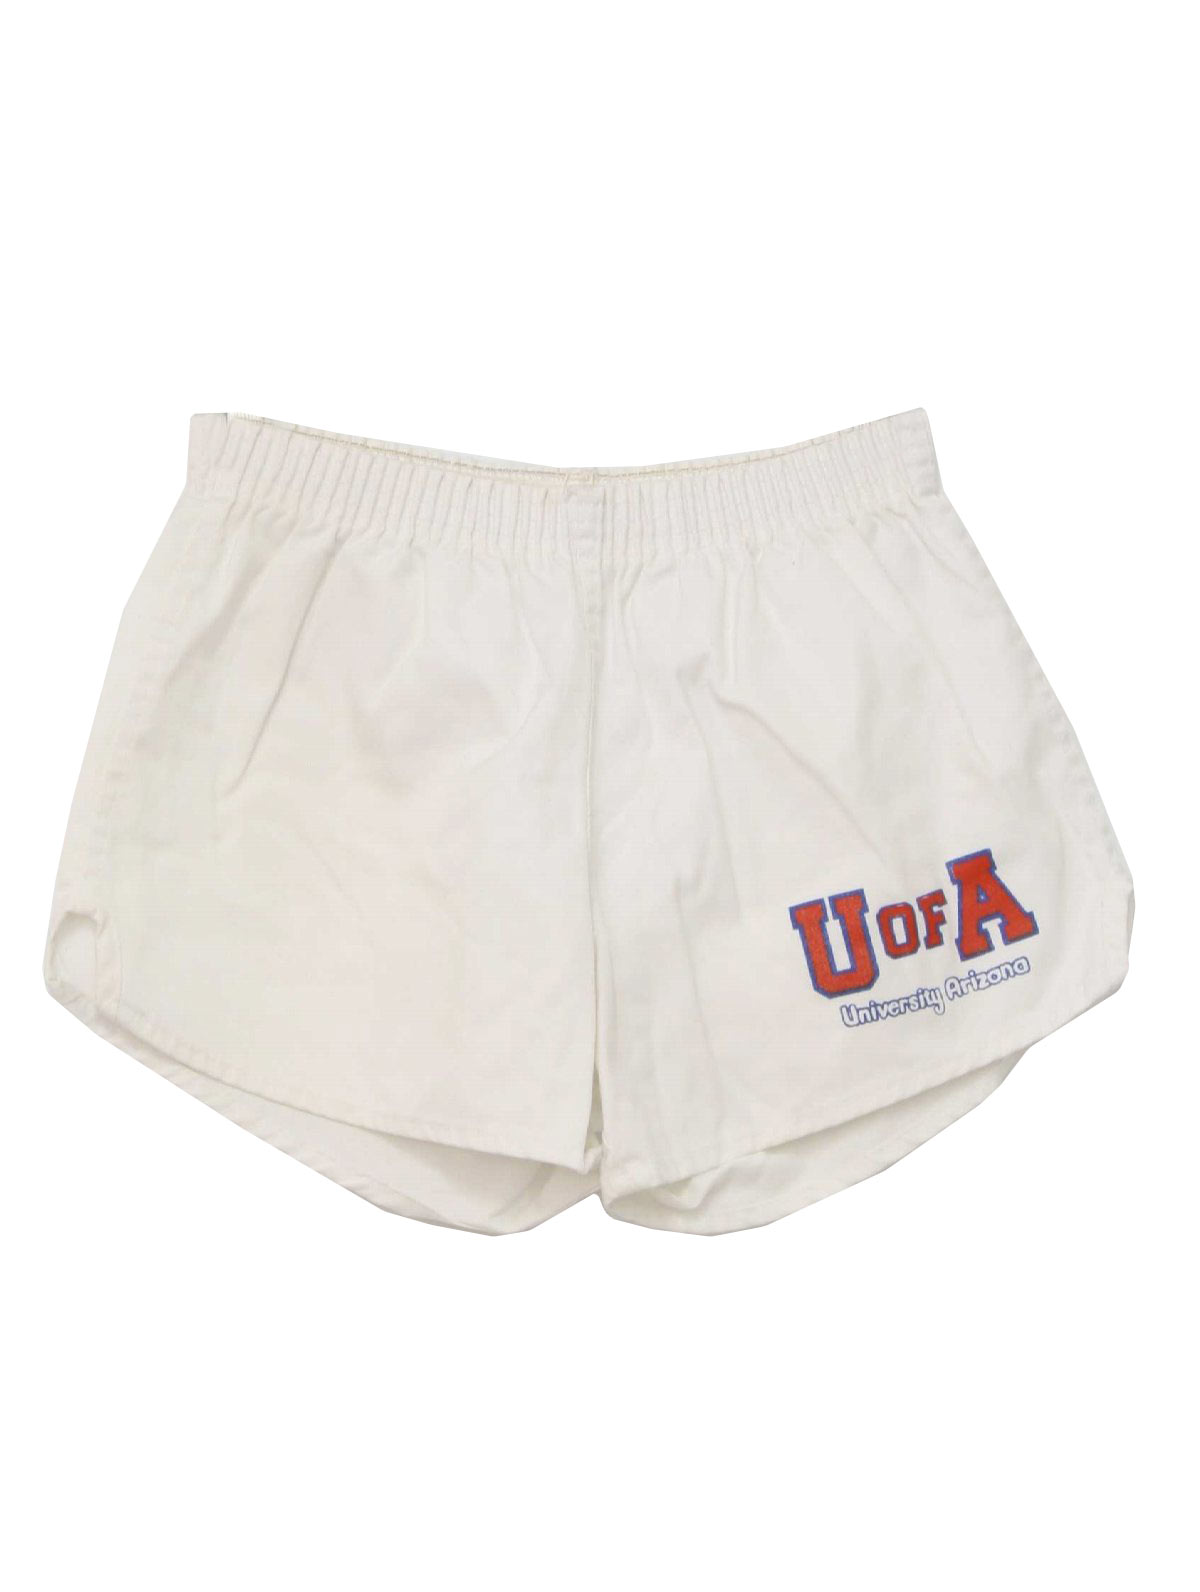 Retro 80's Shorts: 80s -Soffe Shorts- Mens white, red and blue ...